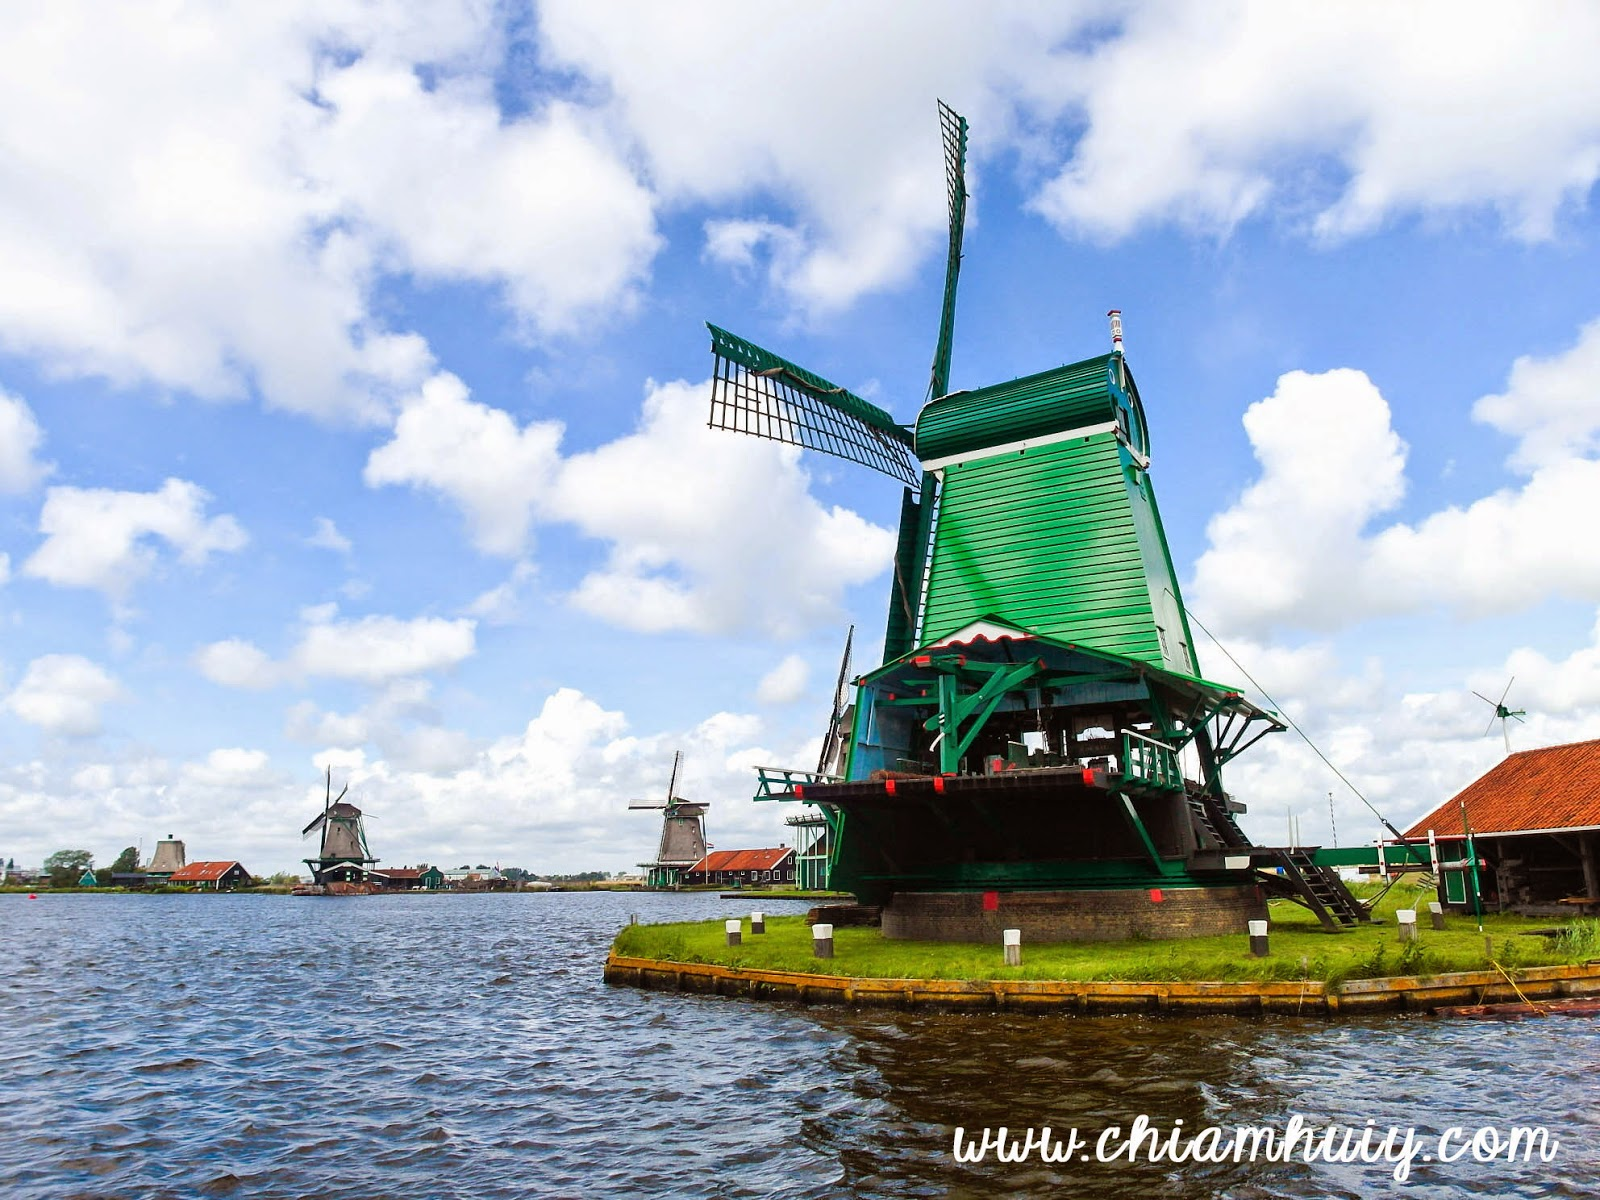 Amsterdam Naar Singapore Amsterdam Travel Guide Zaanse Schans Day 2 Celine Chiam